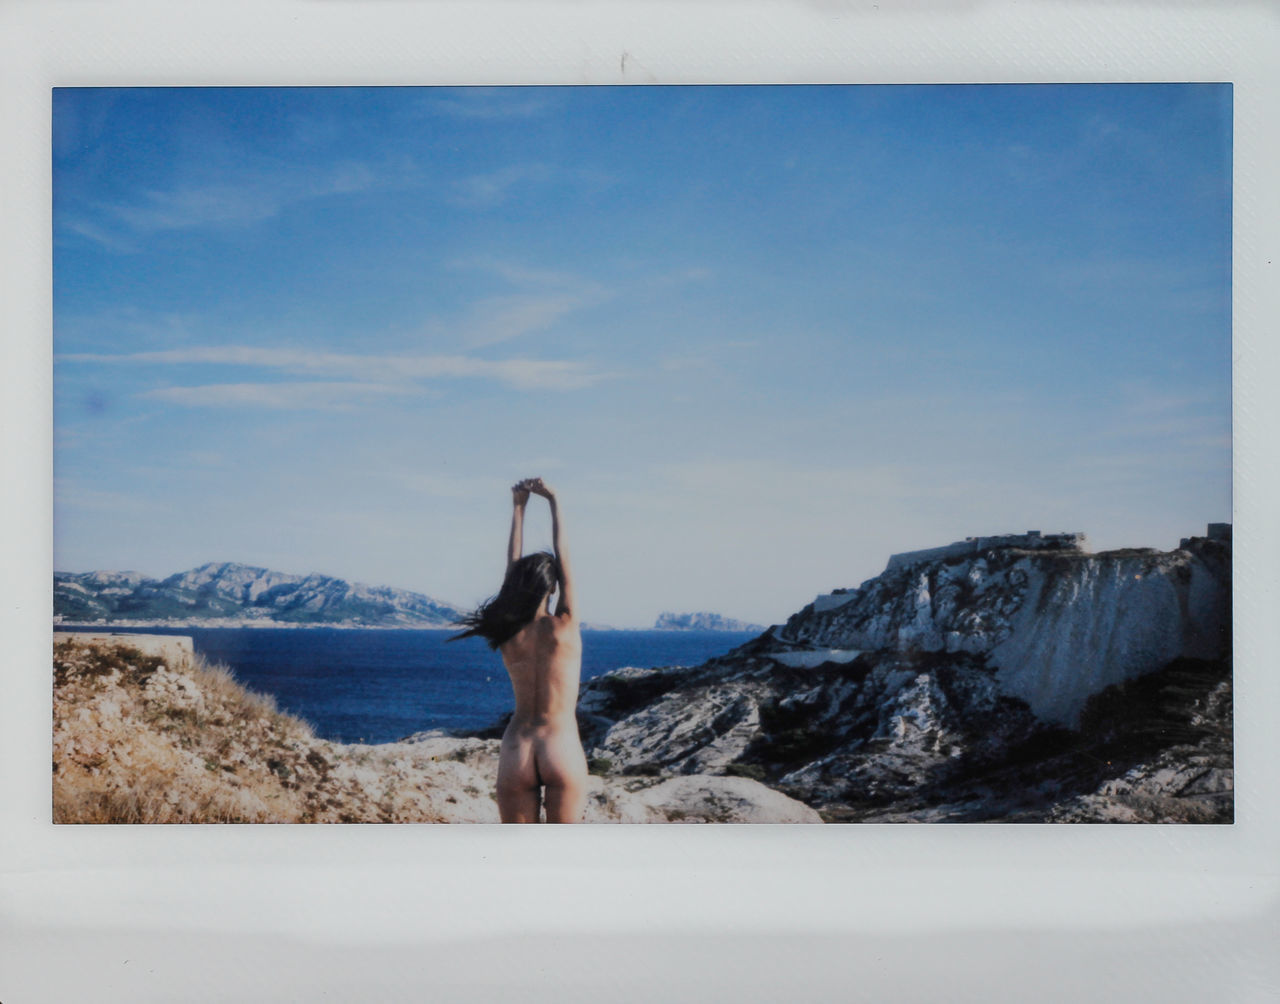 Ile du Frioul Adventure Beauty In Nature Body & Fitness Girl Girls Instant Instax Landscape Marseille Mountain Naked_art Nature Nude_ Not_porn Nudeartphotography Nüde Art. One Person Polaroid Polaroid Art Sky Water Yoga Pose Young Young Women Youth Youth Of Today